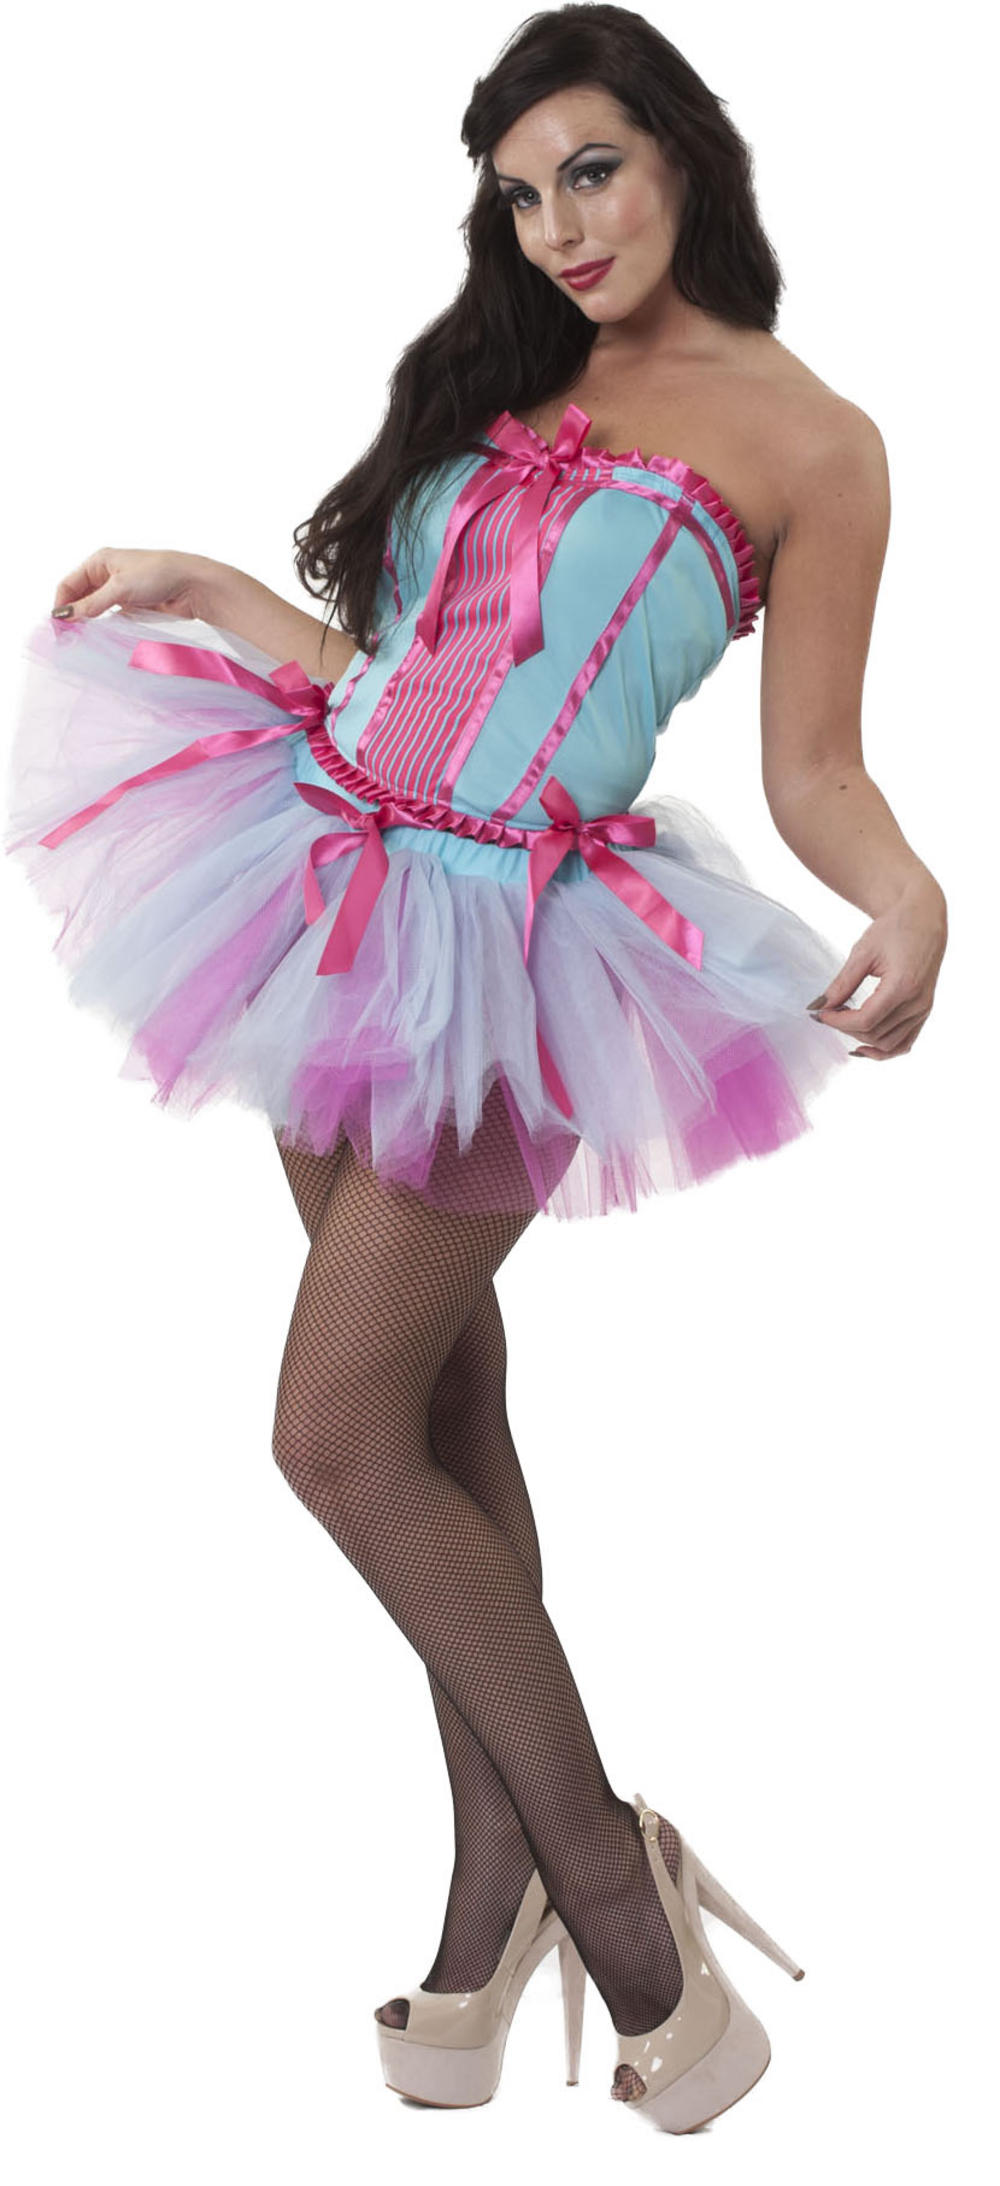 Silky Smooth Show Girl Costume